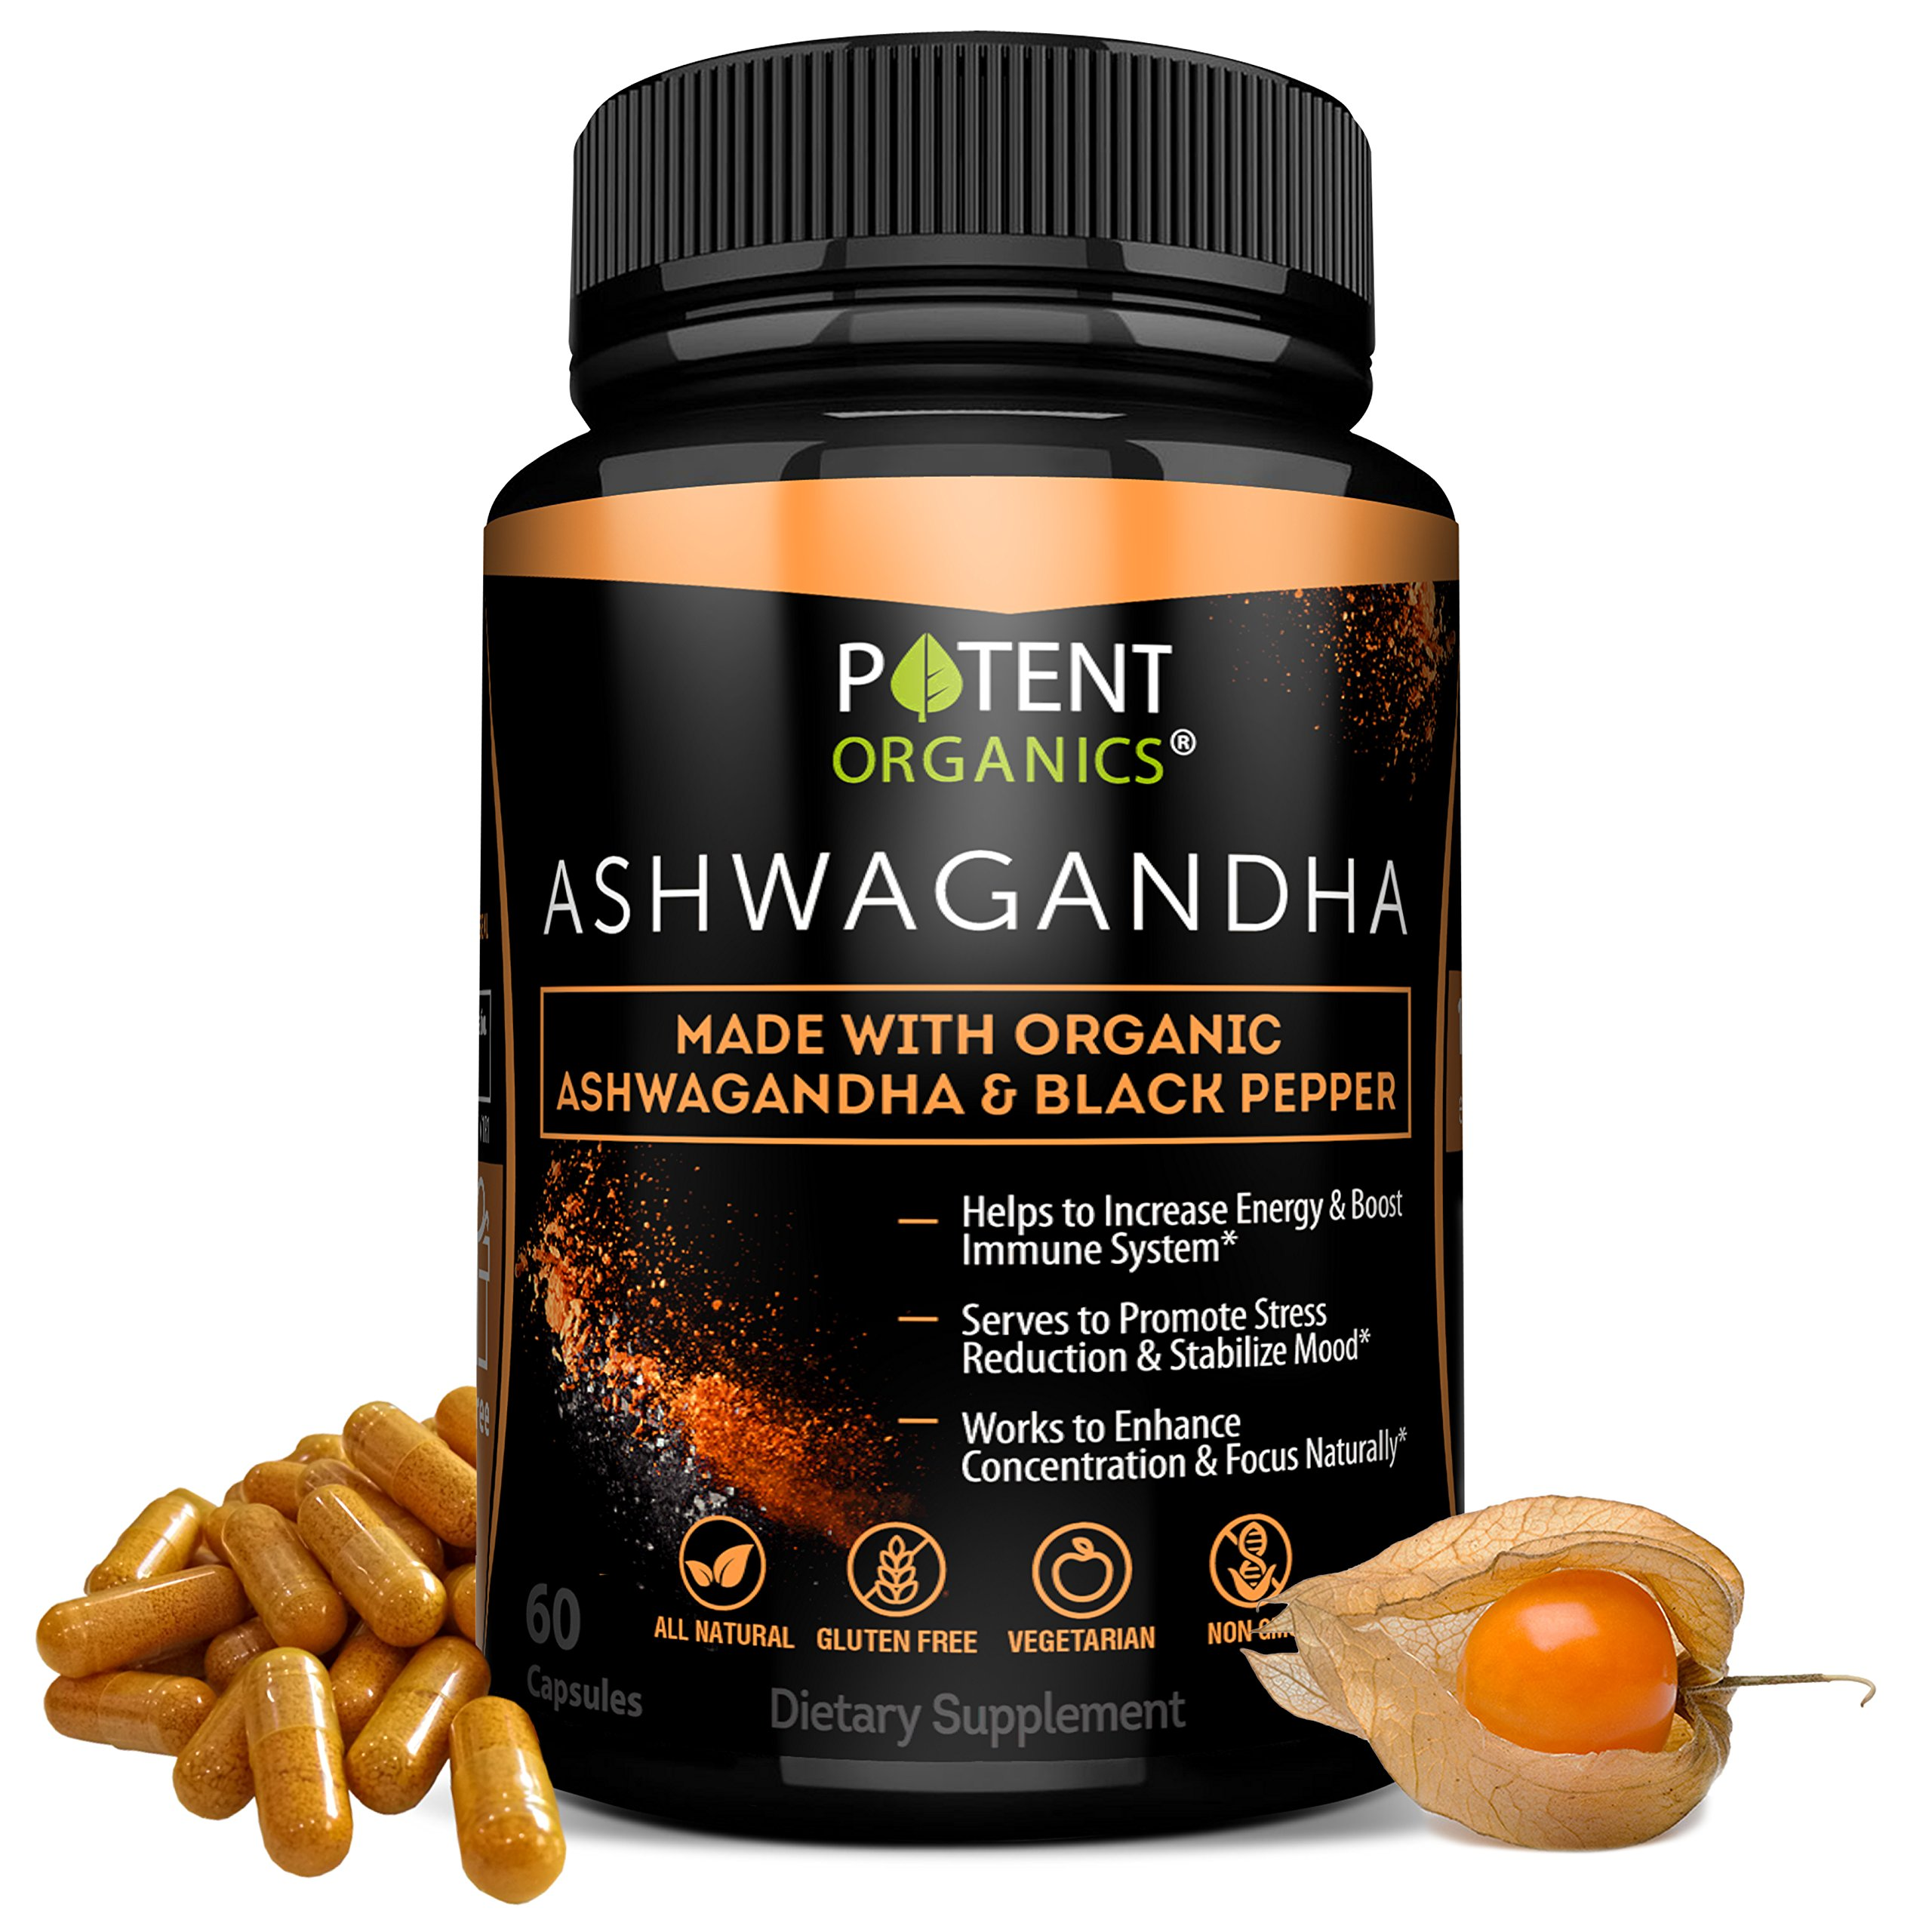 100% Organic Ashwagandha 1300 mg - Natural Energy & Immune System Booster - Stress & Anxiety Relief - Organic, Vegetarian & GMO-Free – 60 Capsules with Black Pepper for Absorption